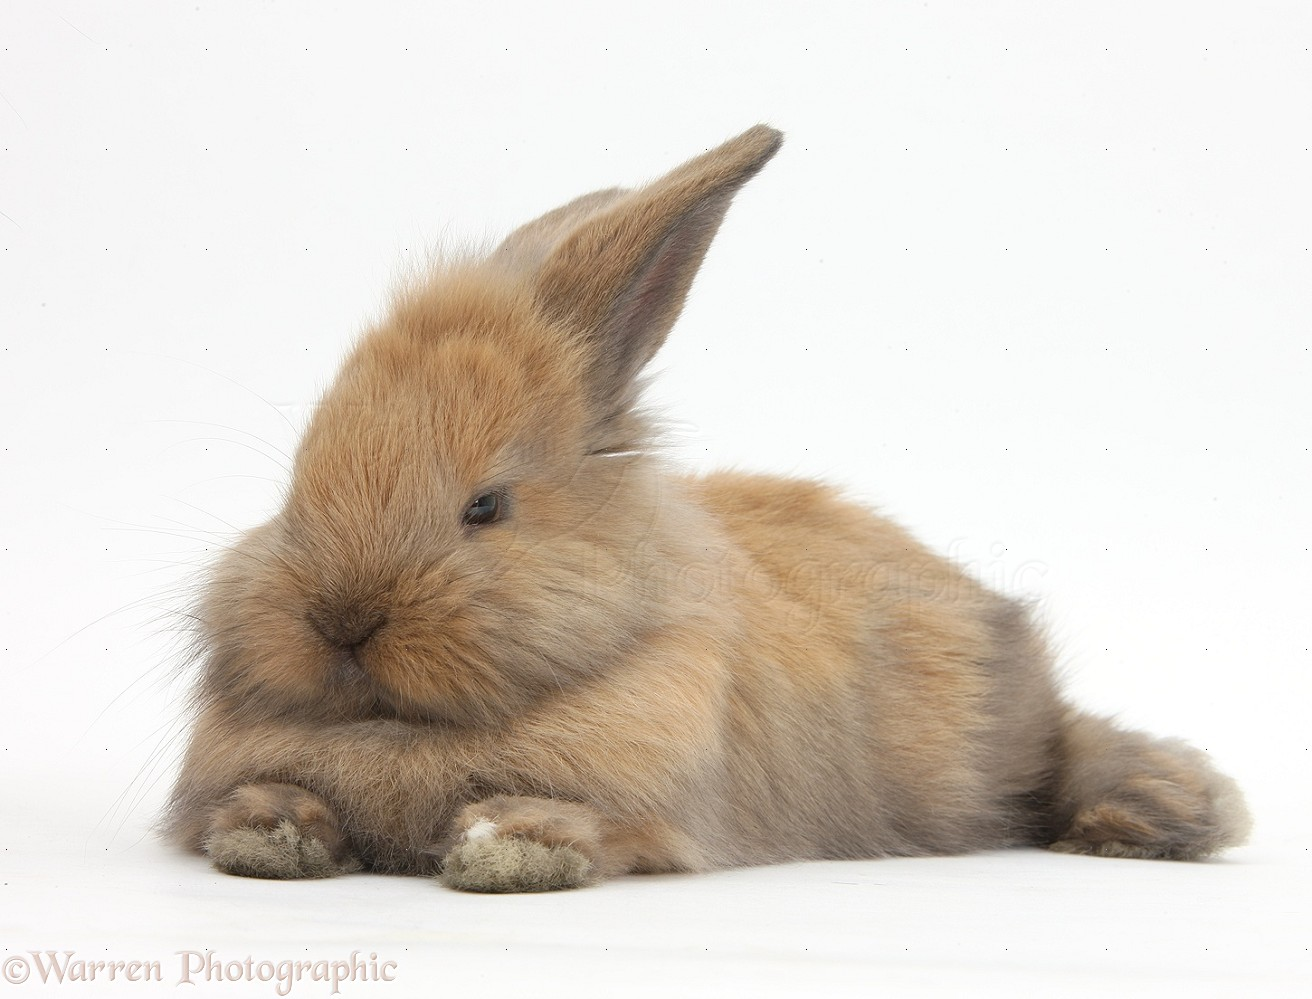 Brown and white lionhead rabbit - photo#45